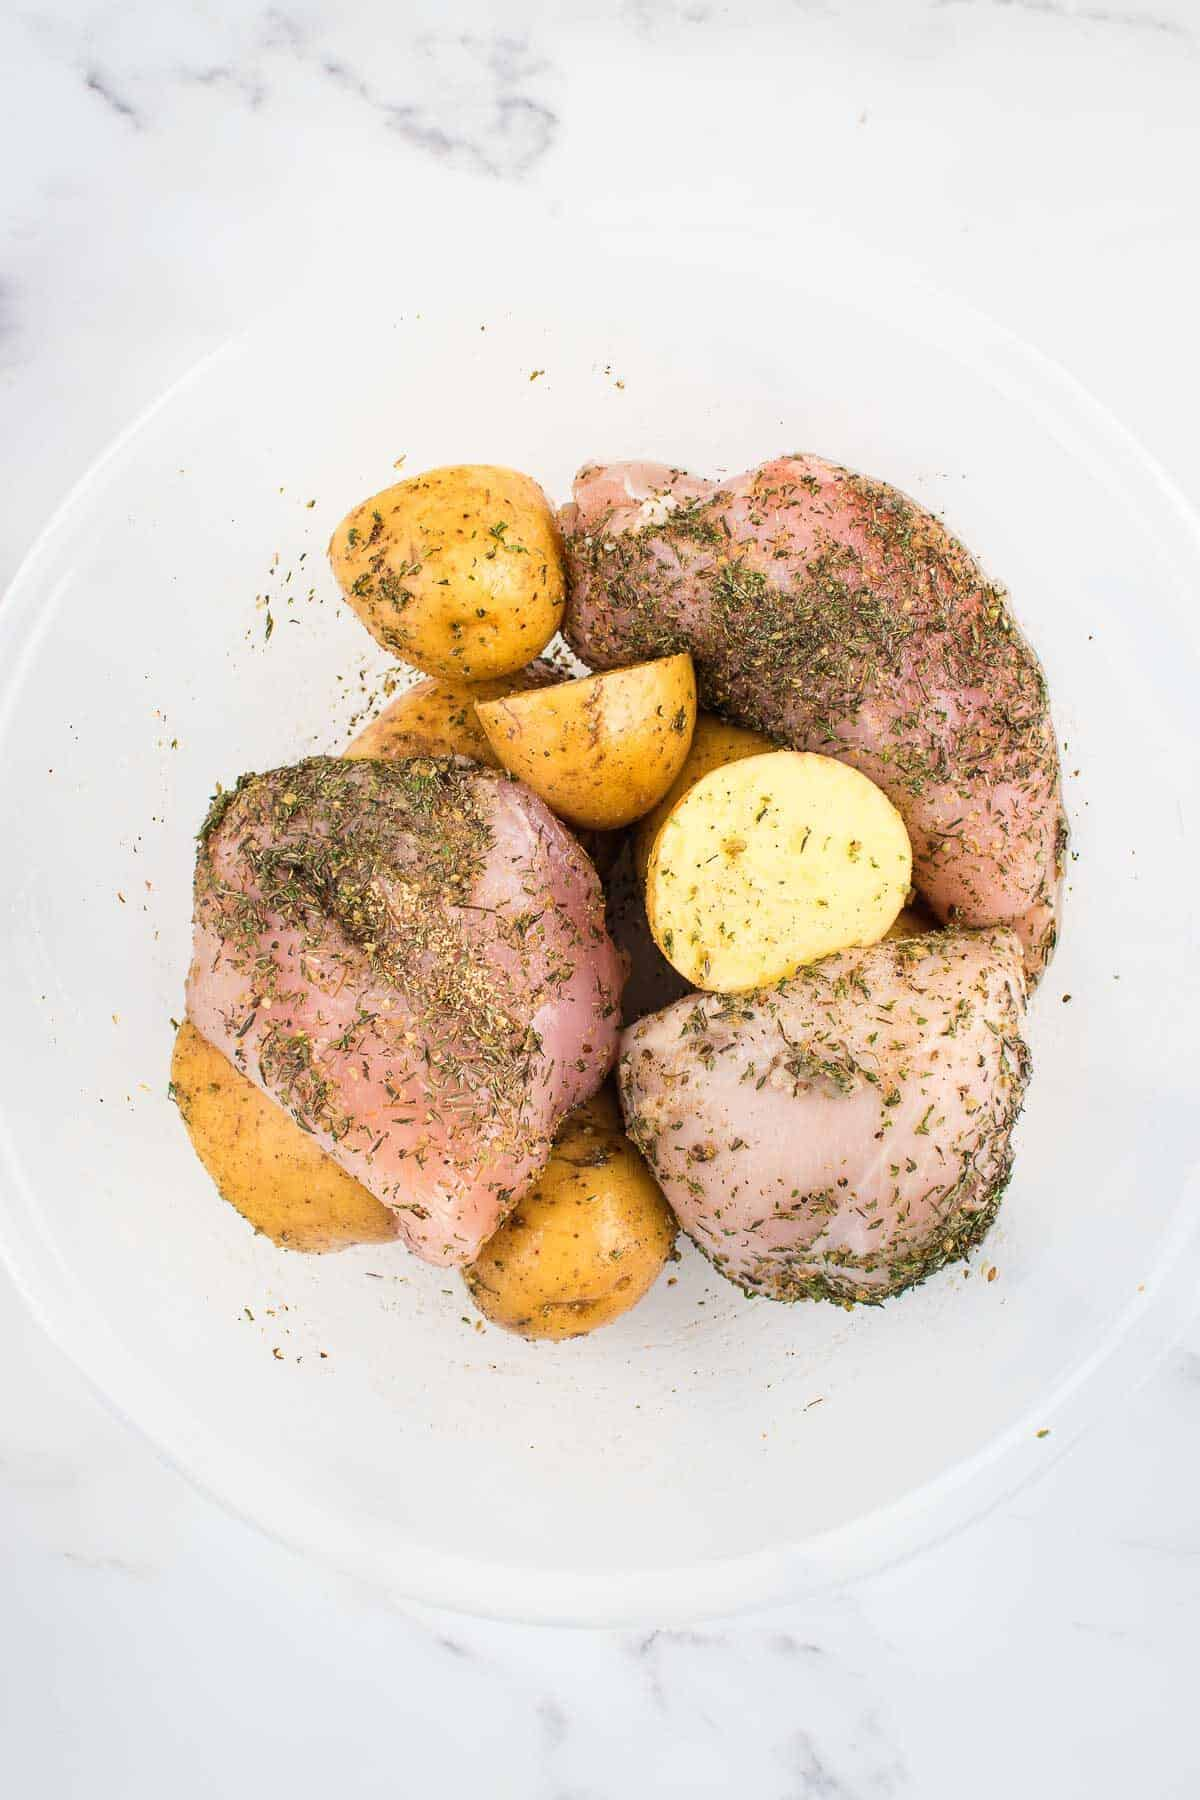 Raw chicken breasts, potatoes and seasoning in a bowl.